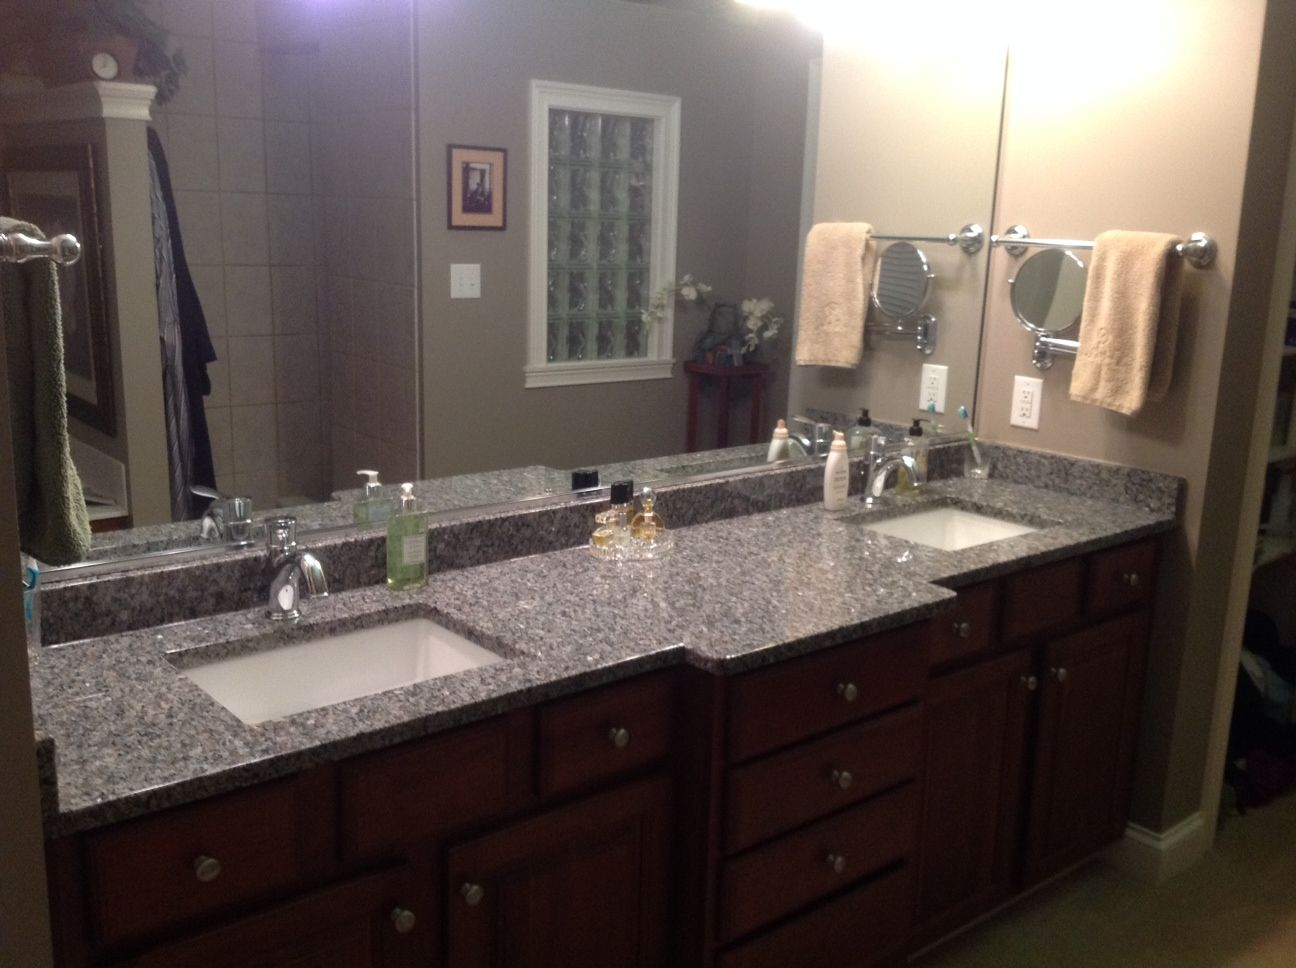 New caledonia granite bathroom vanity natural stone from levantina chicago install by olympia stone